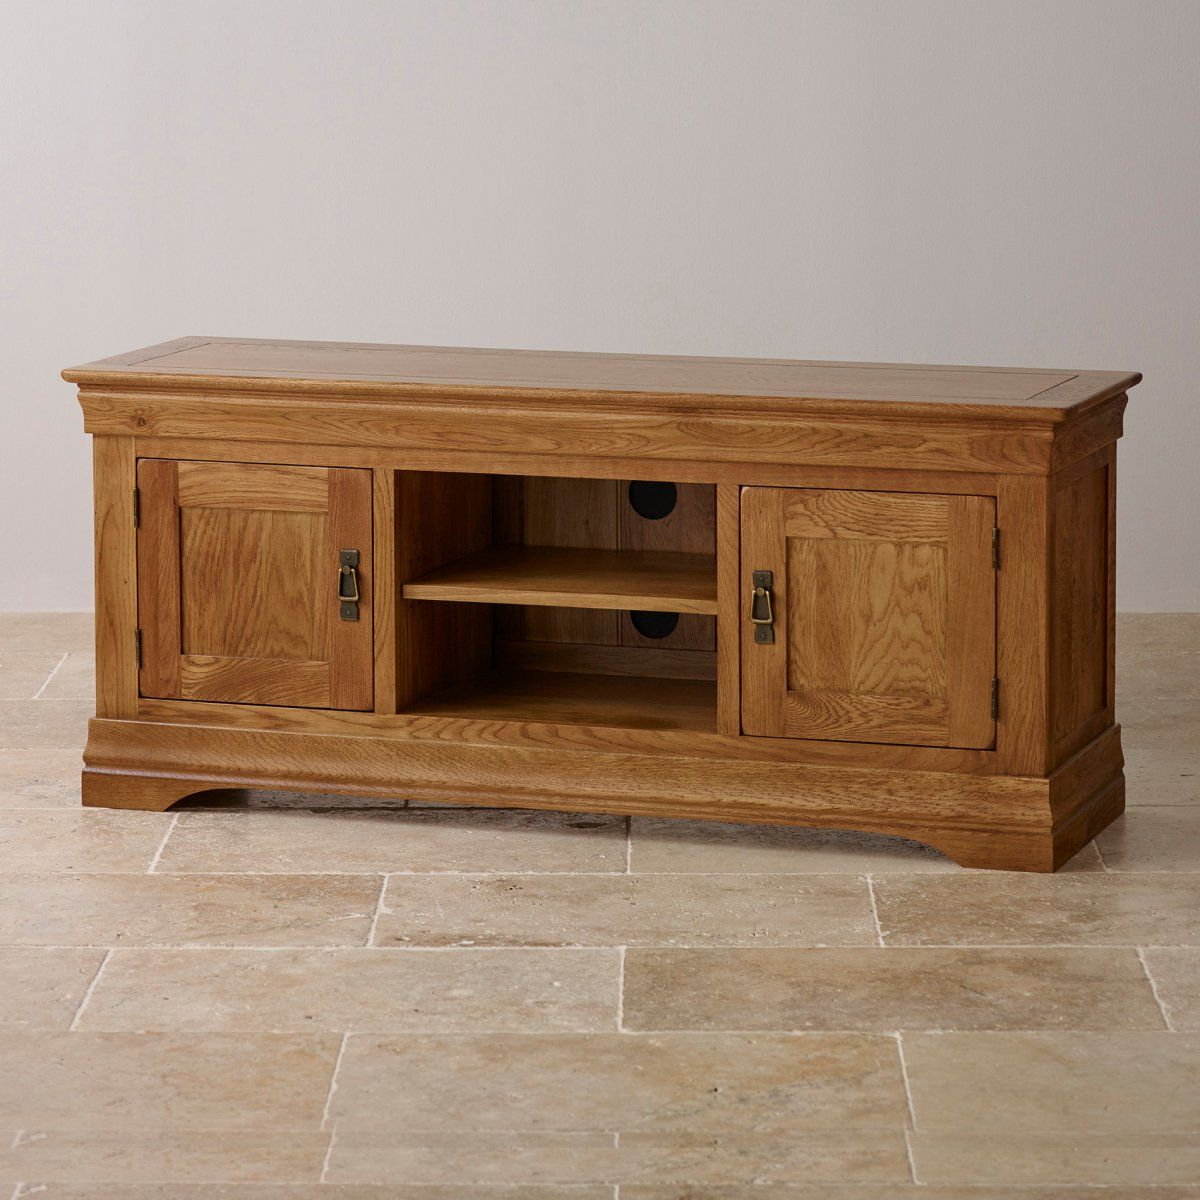 Farmhouse Tv Stand (View 9 of 10)